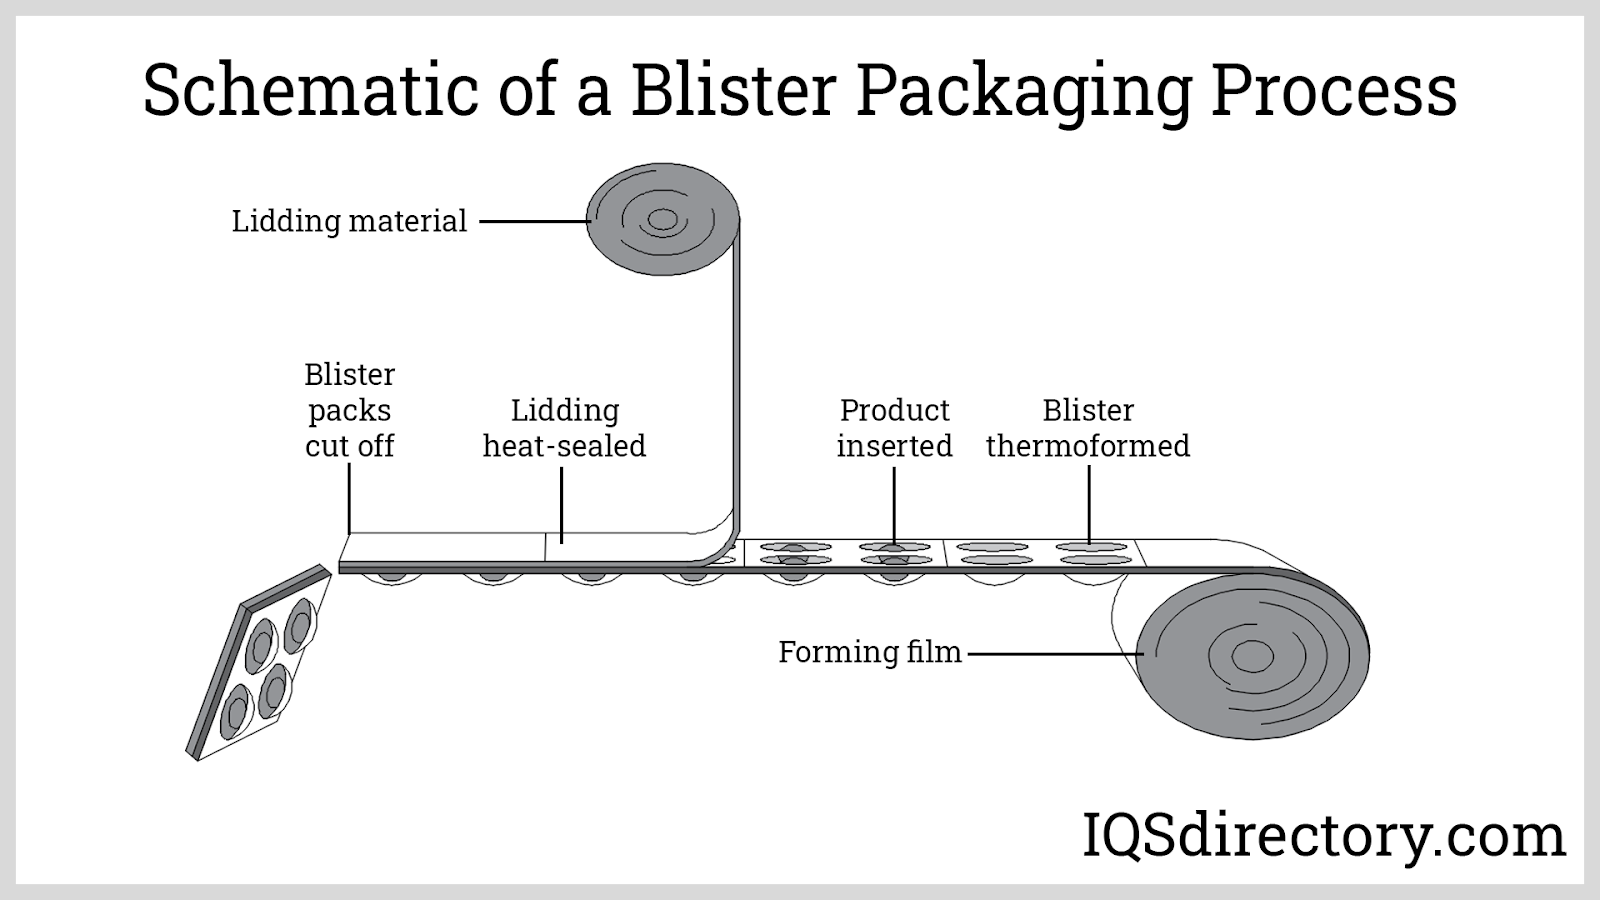 Schematic of a Blister Packaging Process